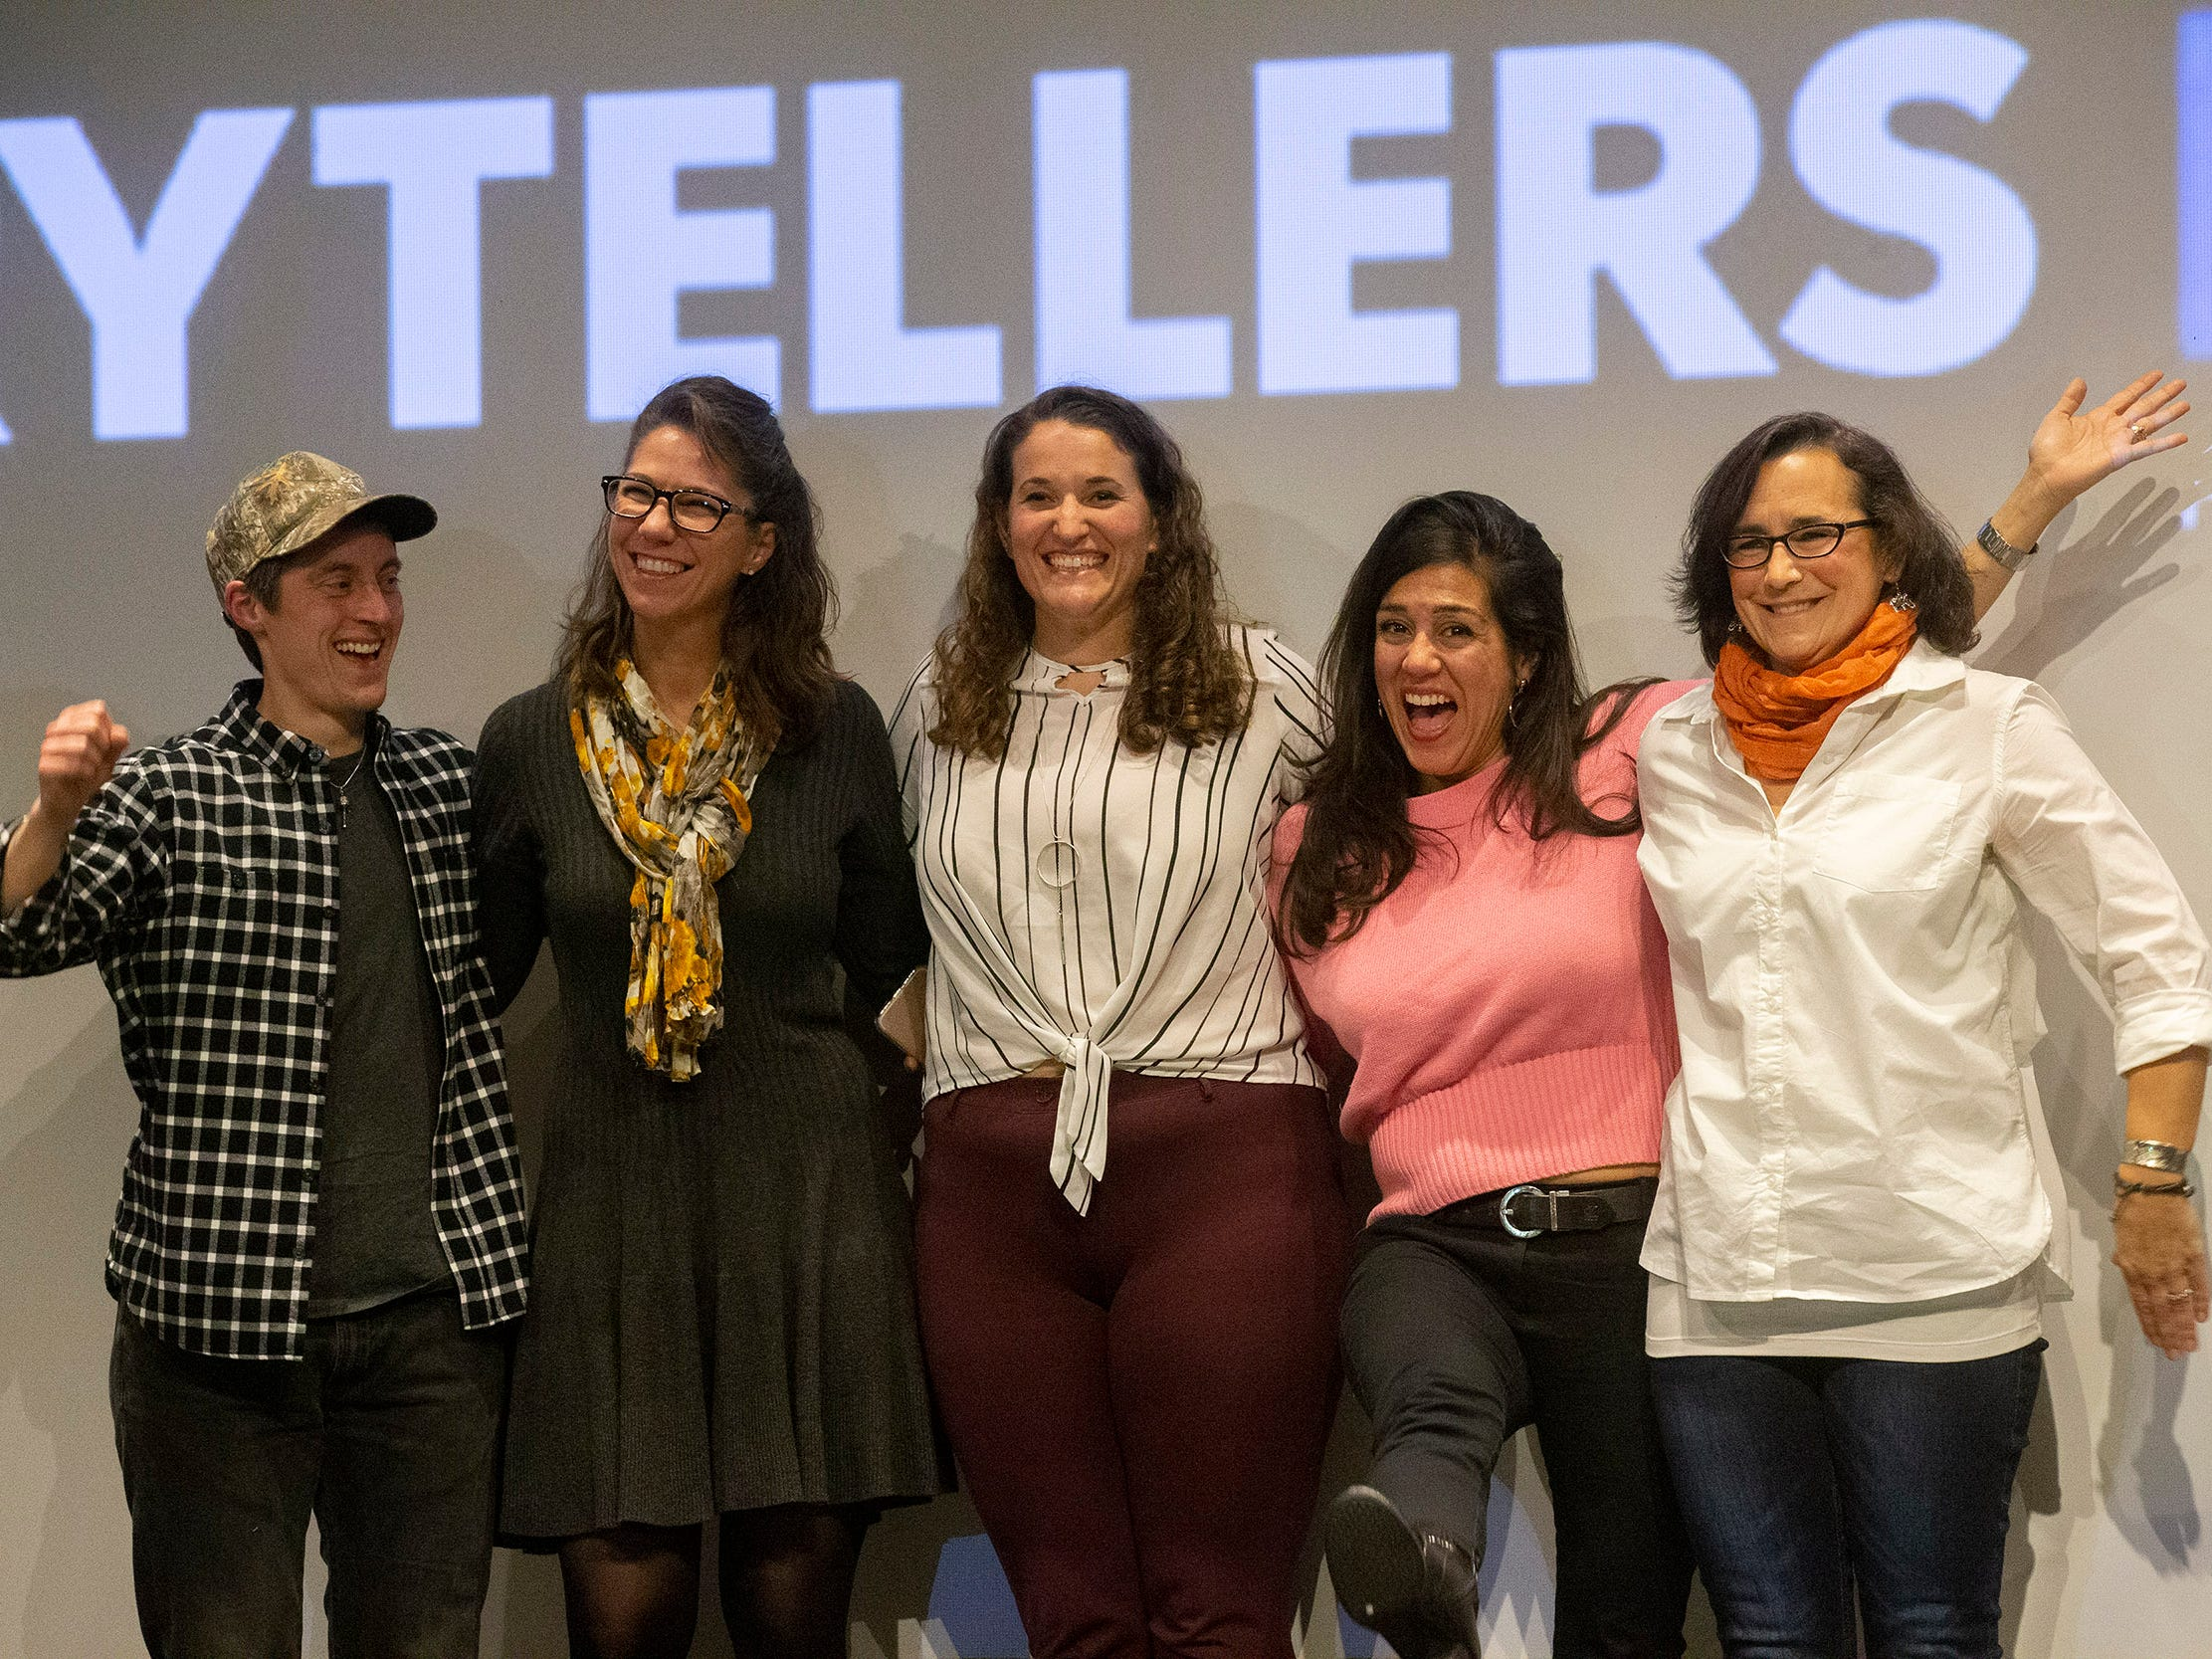 Speakers ham it up as the show draws to to close - l to r -Dillan DiGiovanni, Michelle A Mulkerin, Susanne Cervenka, Cynthia Salinas, and Mona Soliman. Speakers and crowds alike enjoy the latest version of Storytellers in Asbury Park on February 27, 2019, this night's subject was starting over.